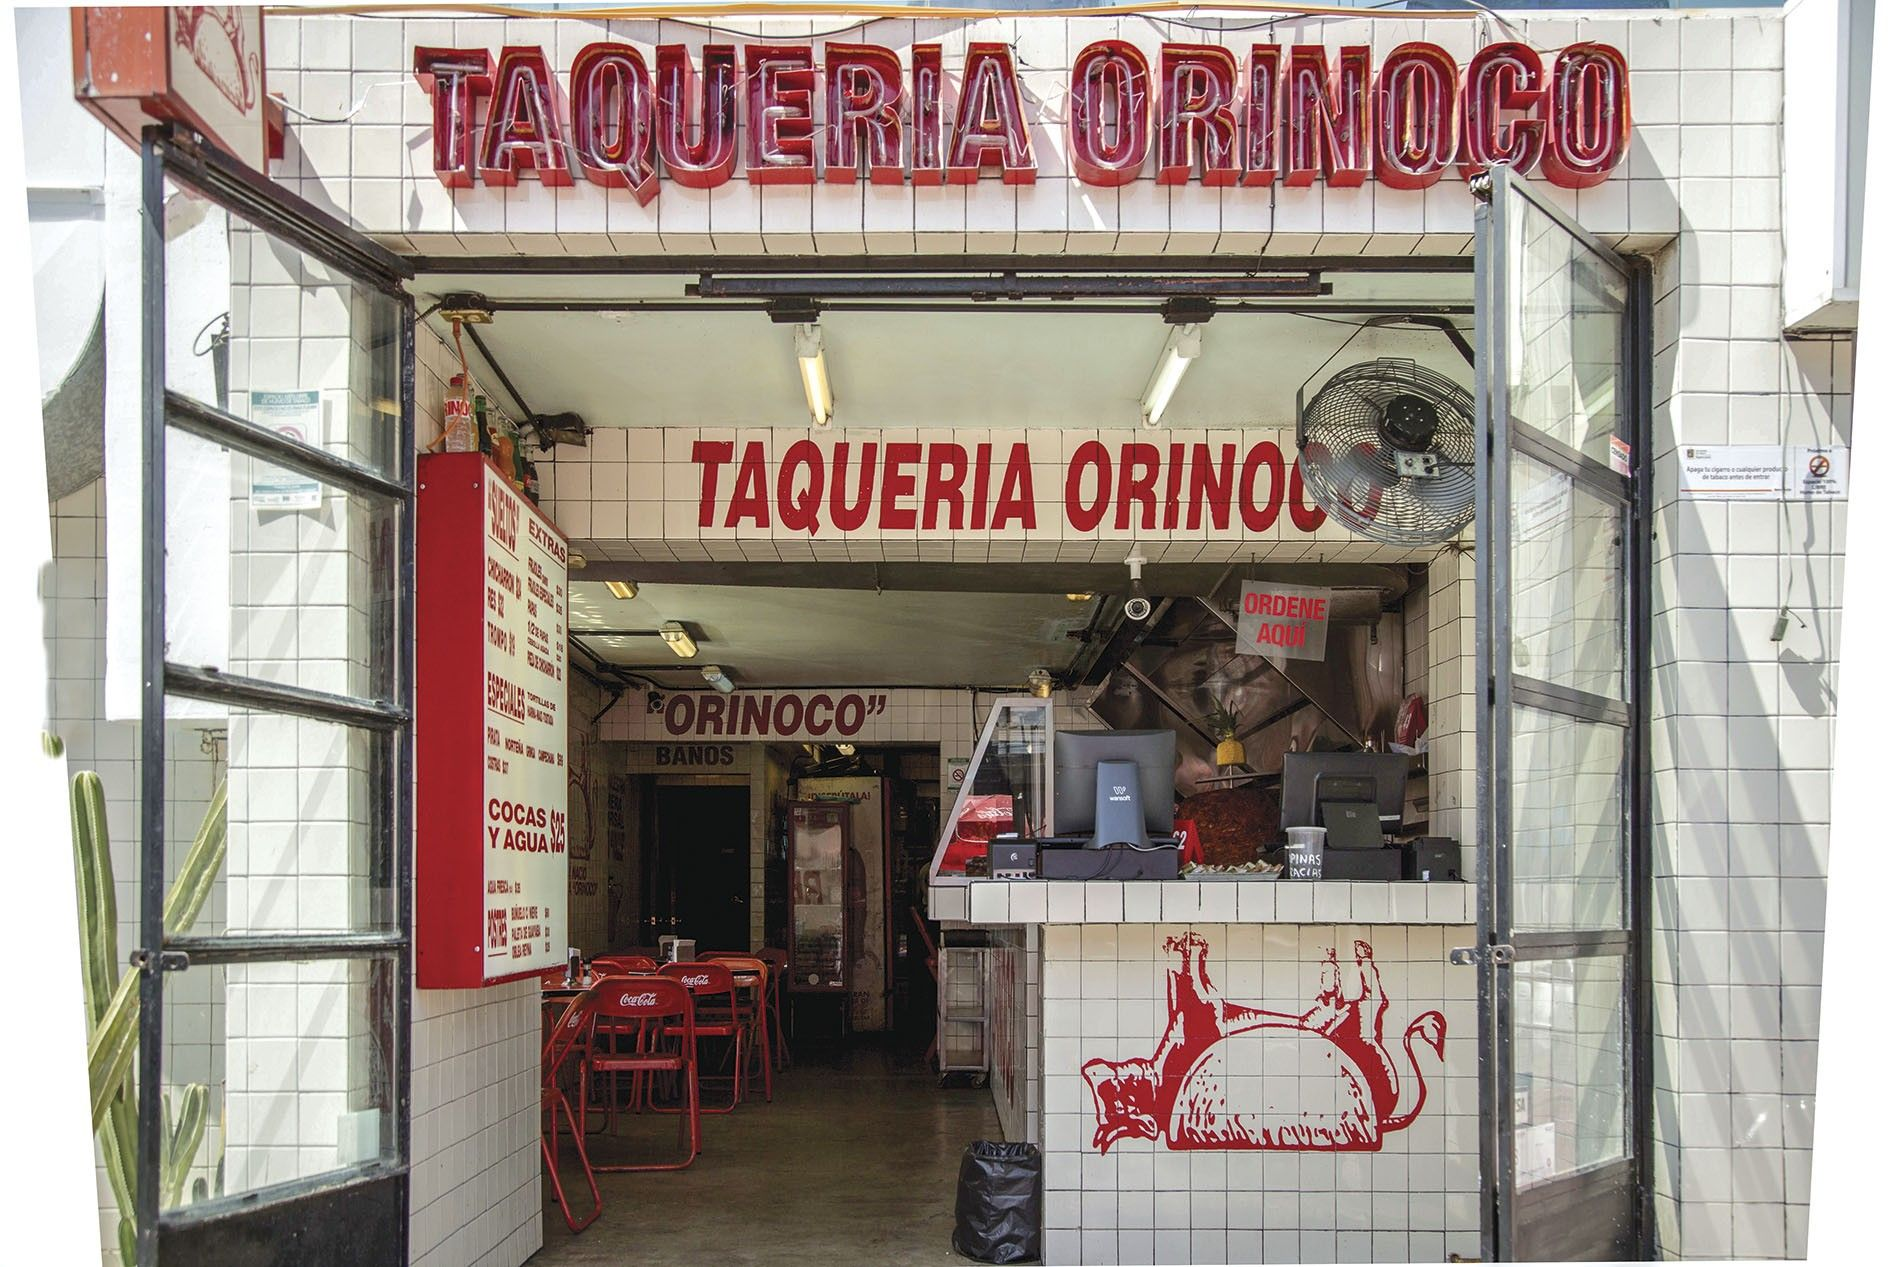 Taqueira Orinoco serves old-school tacos popular with locals and visitors.